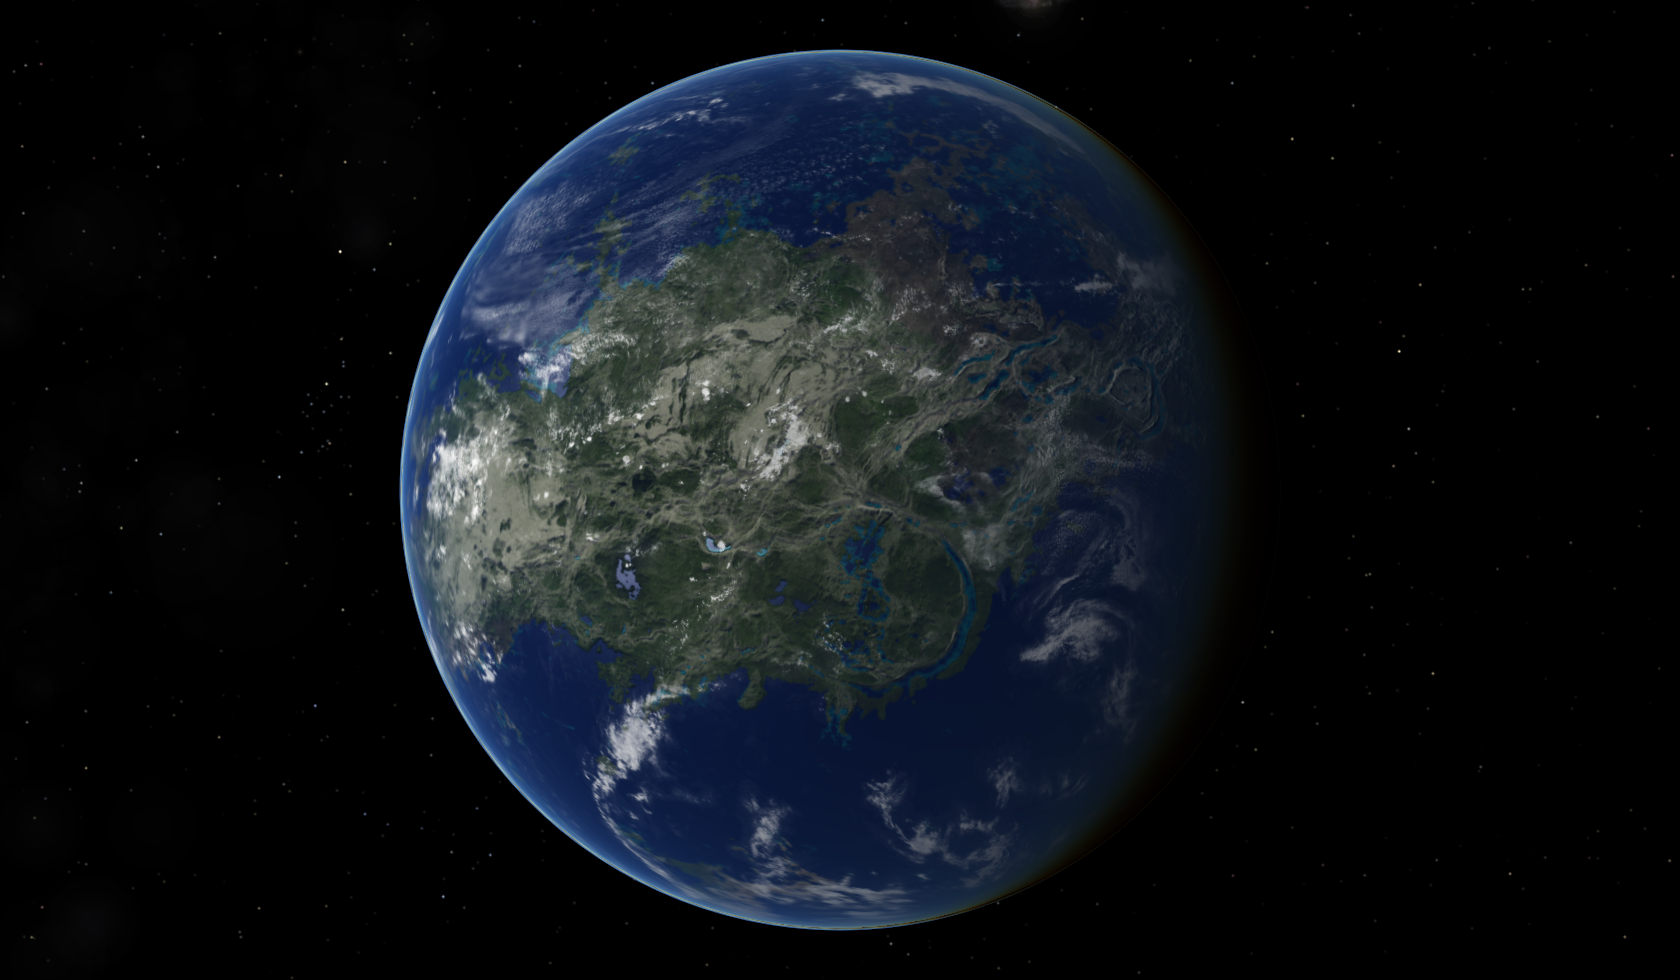 terraformed asteroids - photo #38